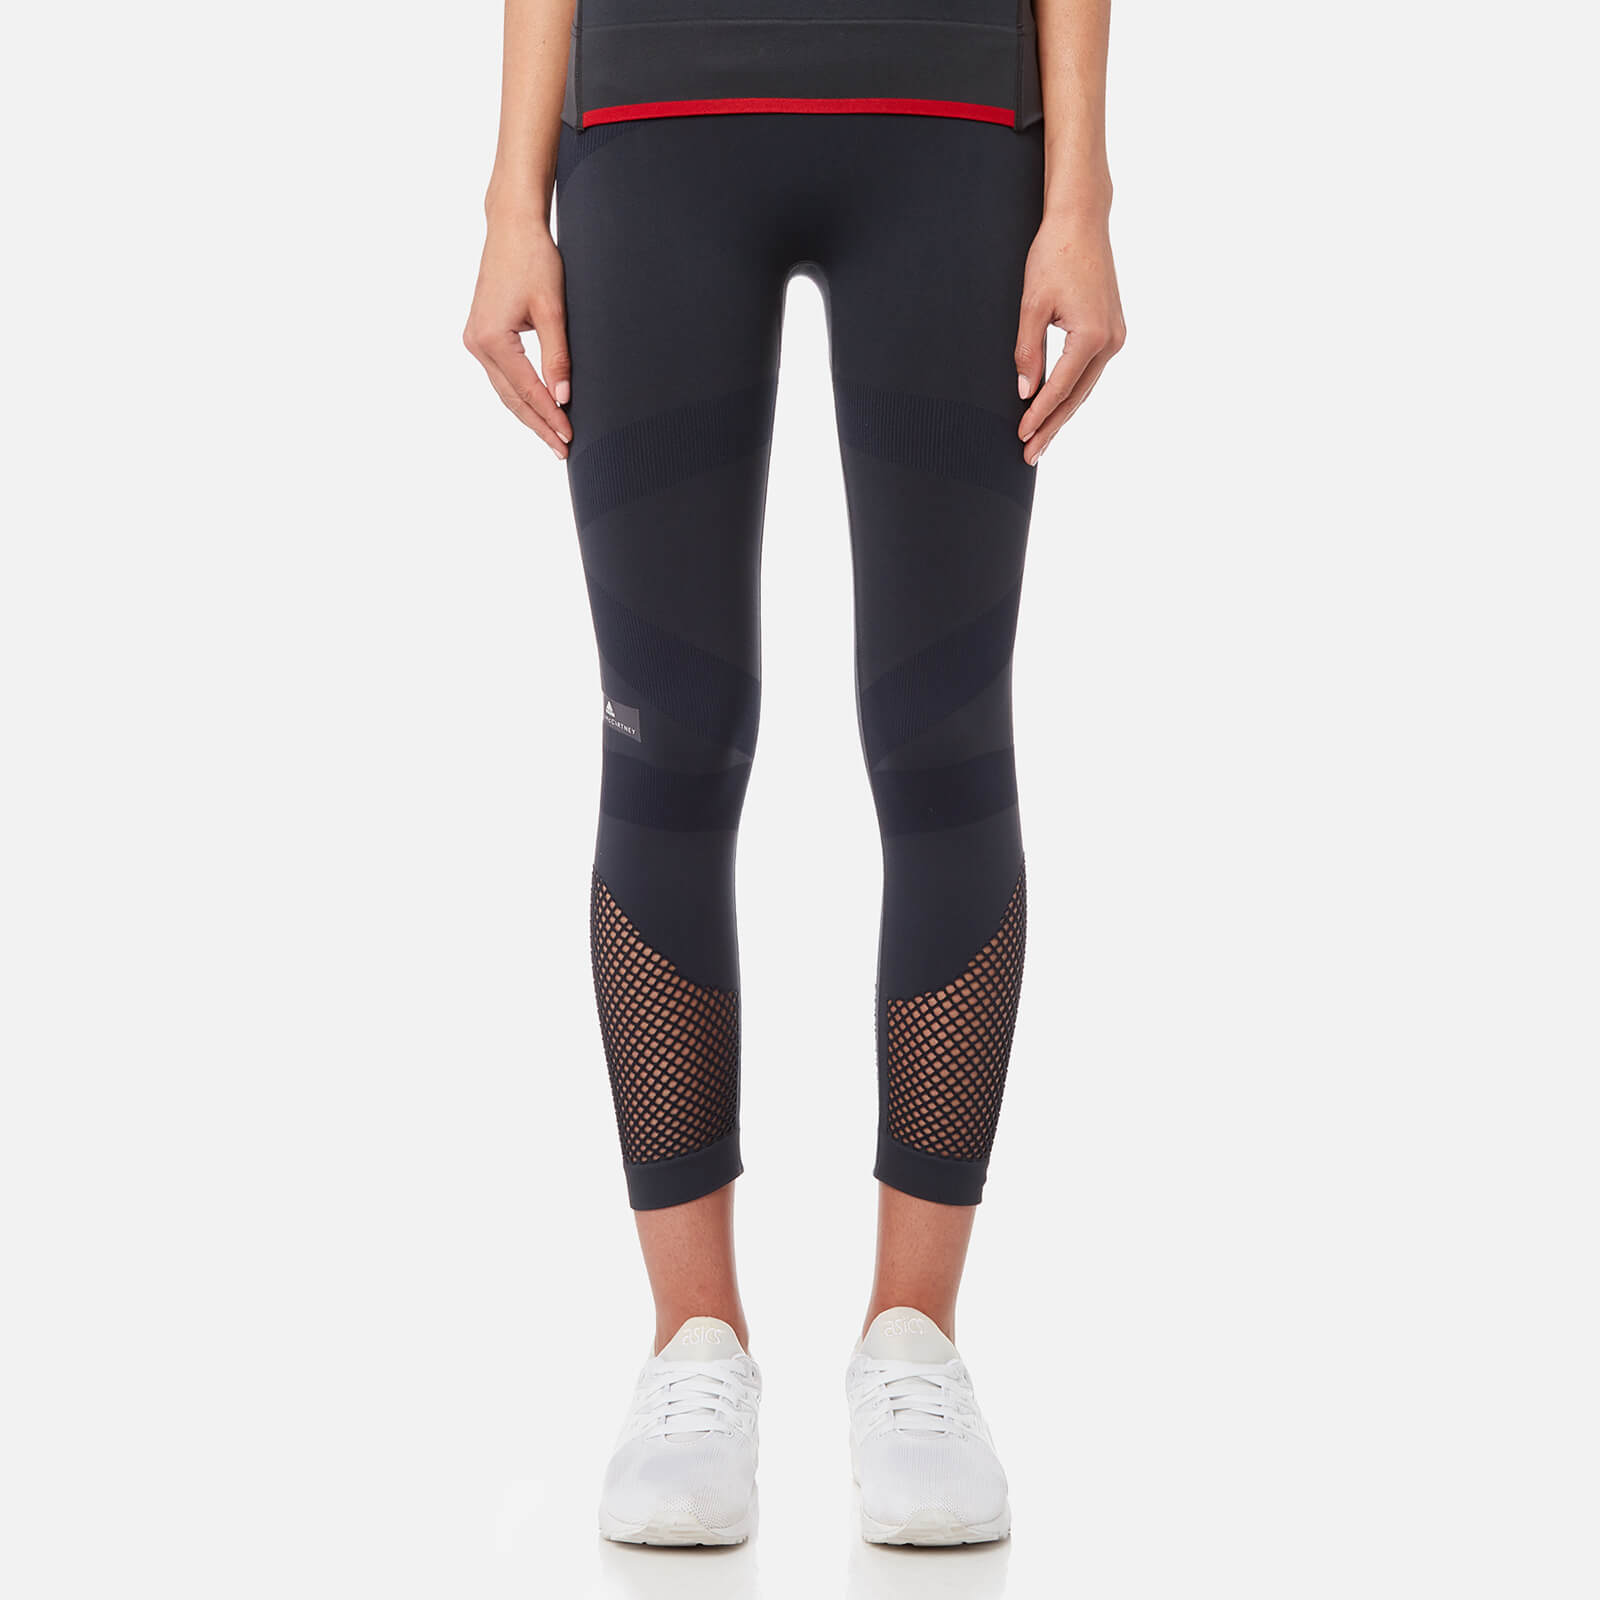 22346e39f45fe0 adidas by Stella McCartney Women's Train 3/4 Tights - Night Grey - Free UK  Delivery over £50